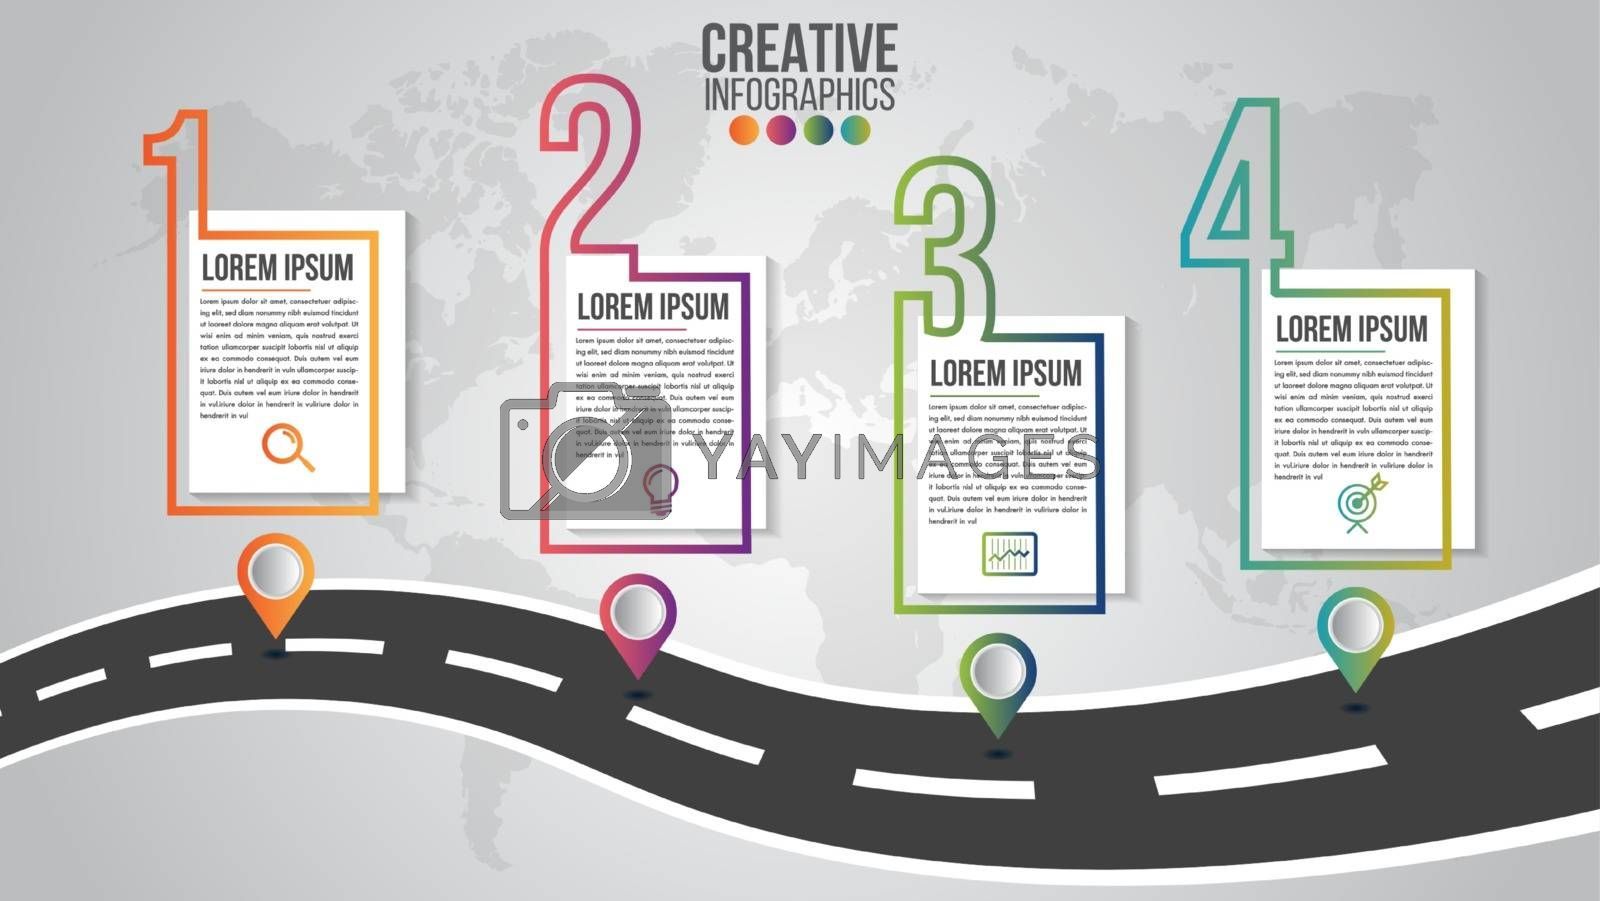 Infographic modern timeline design vector template for business  by Zeedoherty